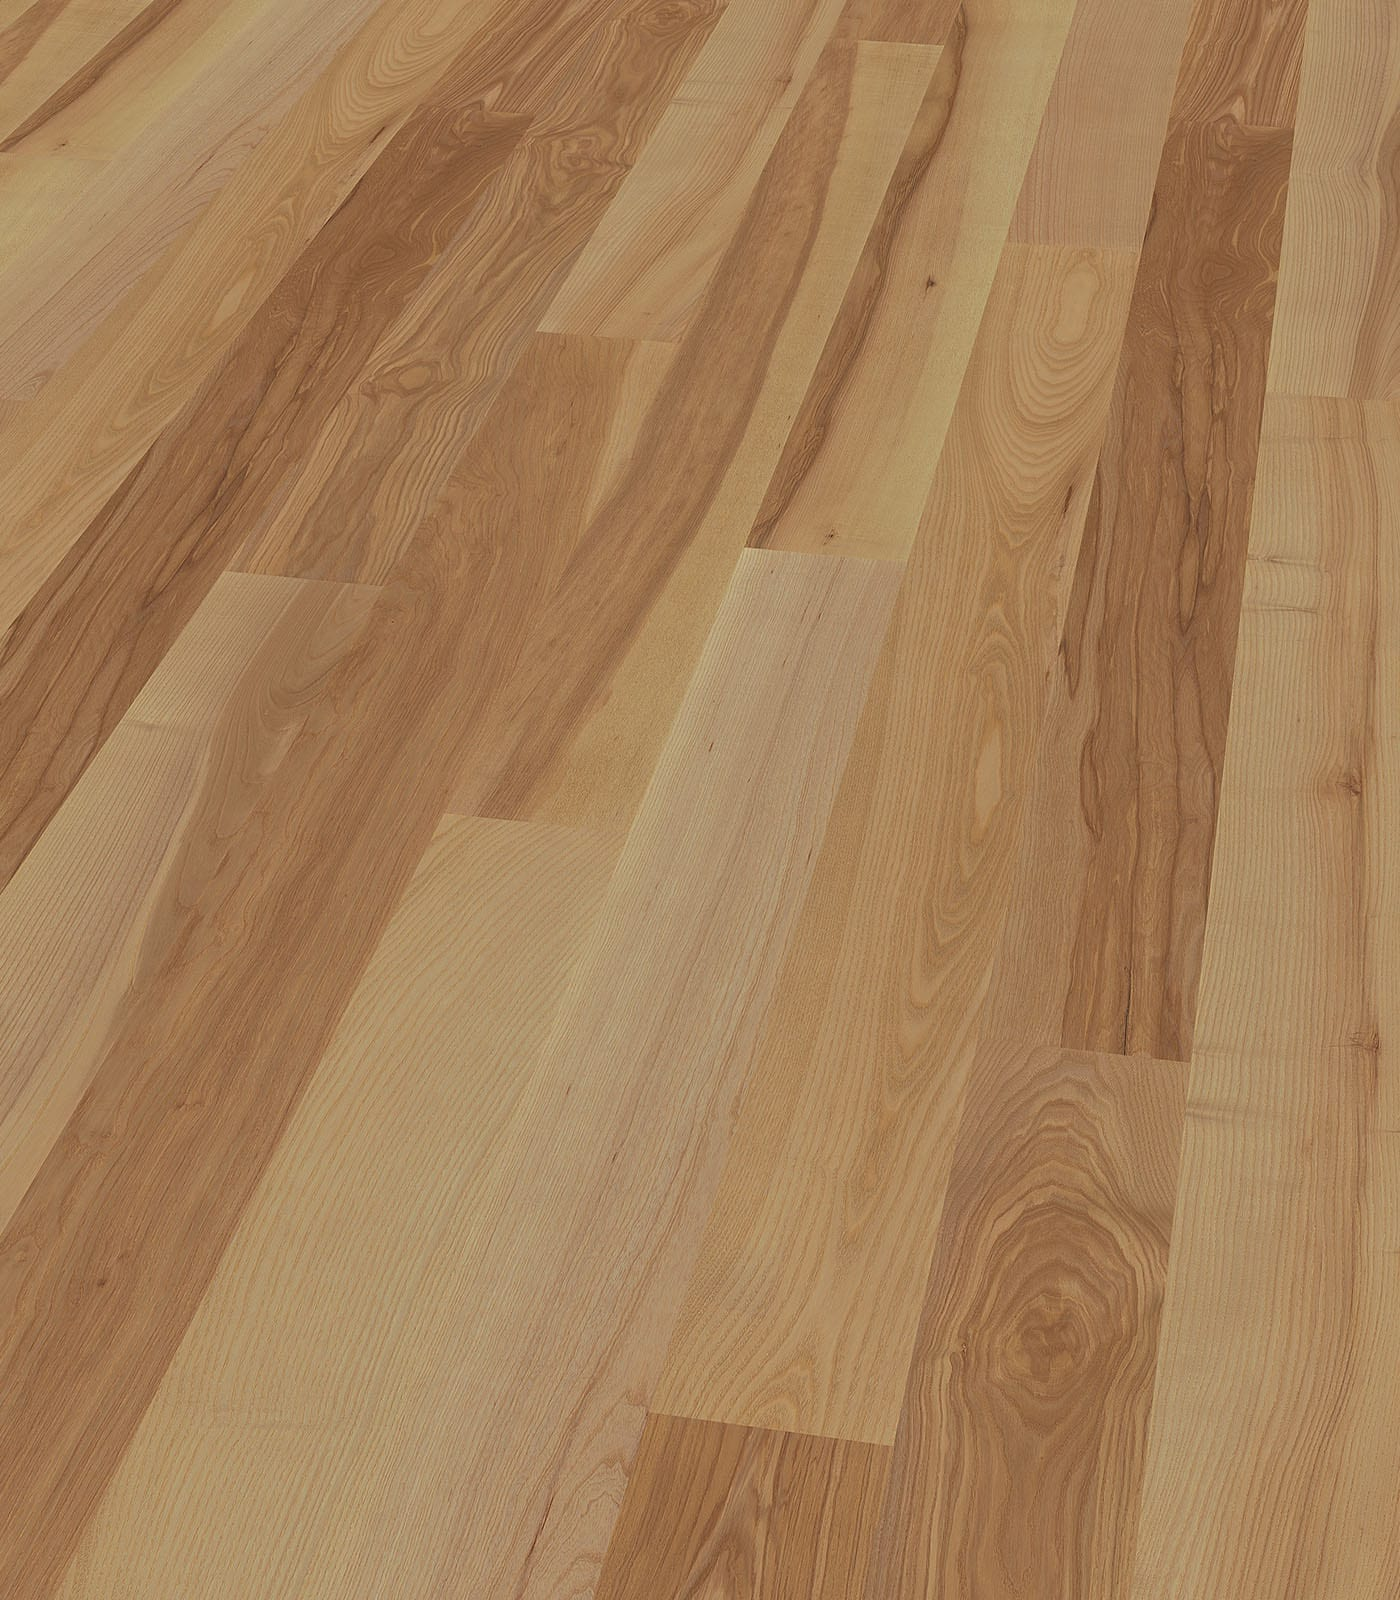 Vienna-After Oak Collection-European Ash Floors - Angle